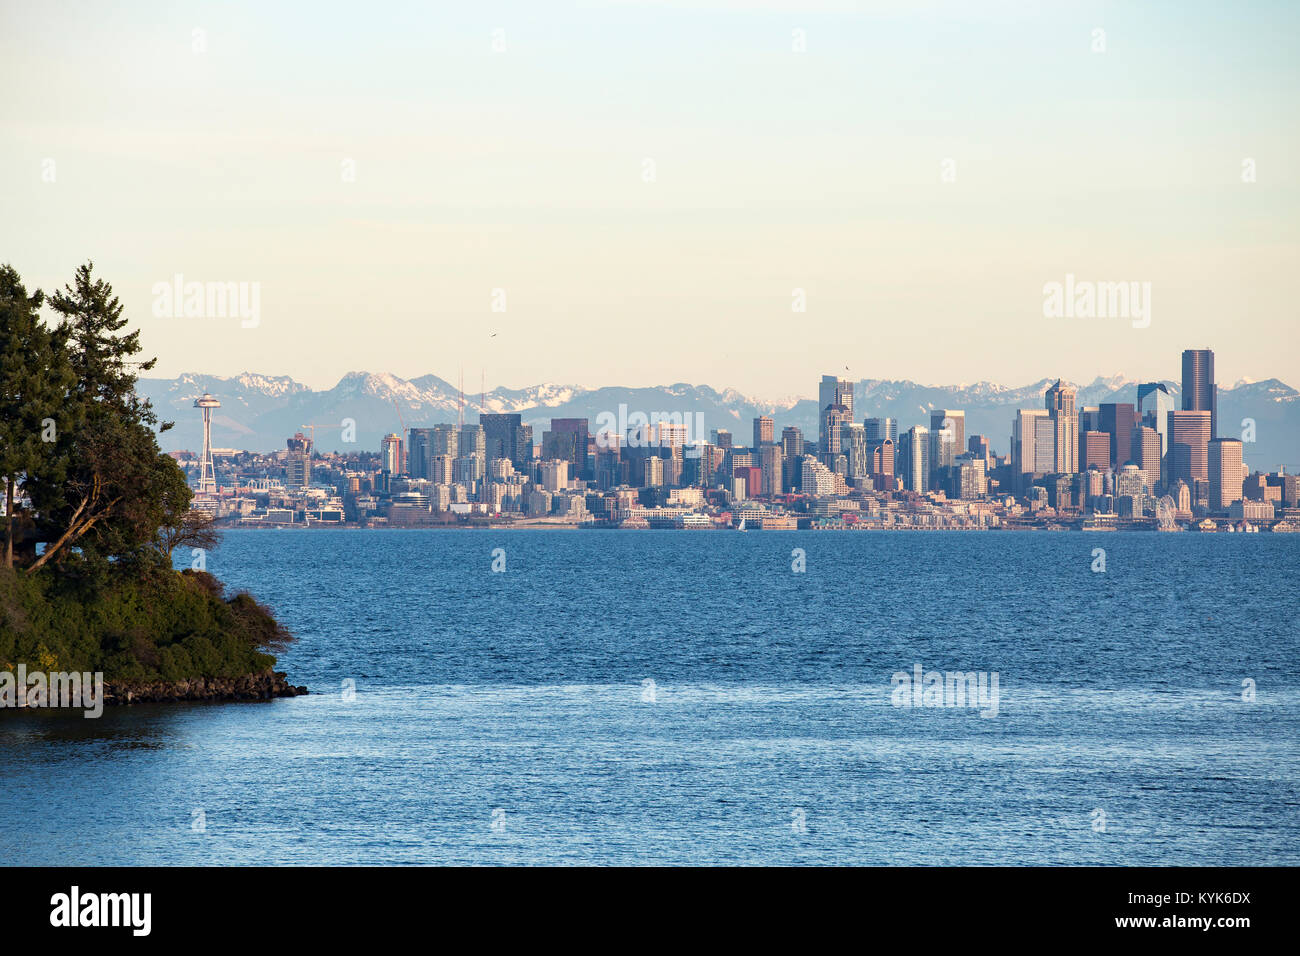 Seattle Space Needle and Seattle skyline and Seattle waterfront. - Stock Image